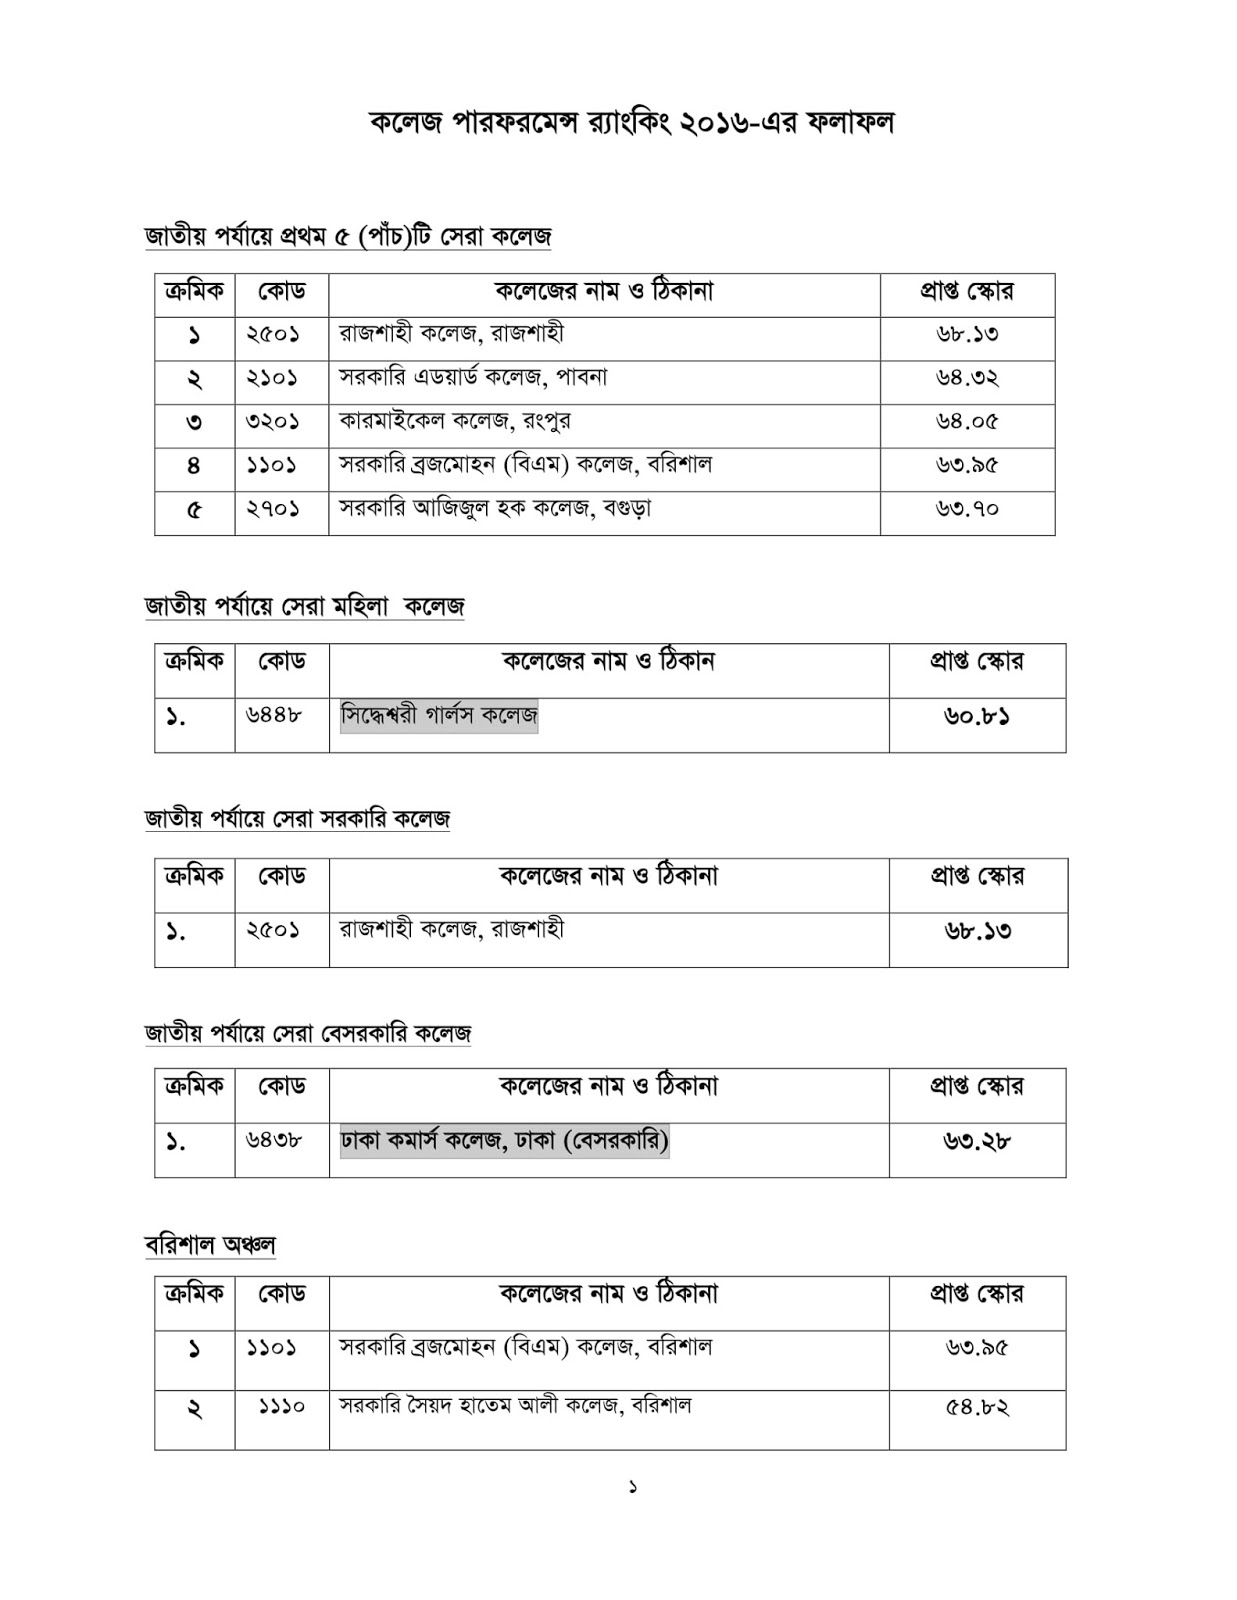 National University - NU - Bangladesh College Ranking 2019